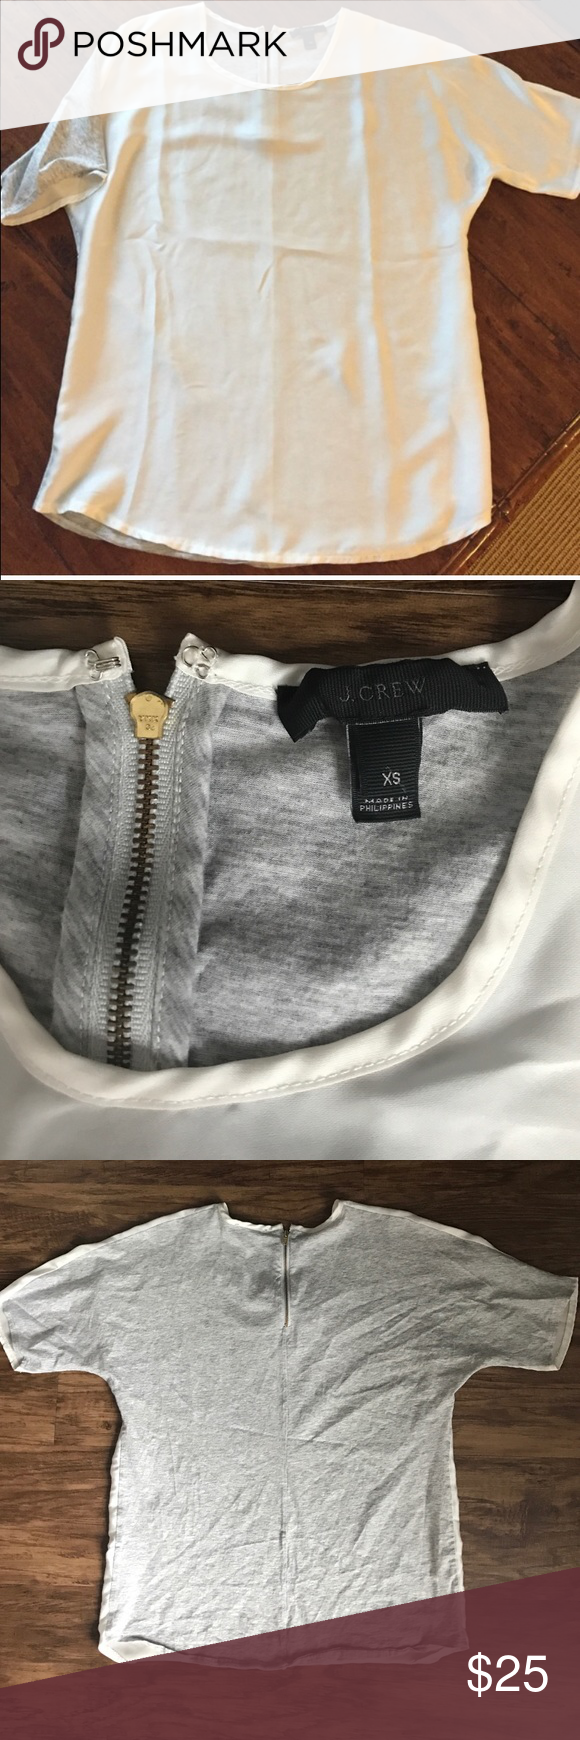 JCrew top Absolutely perfect condition! Has a boxy fit. J. Crew Tops Blouses